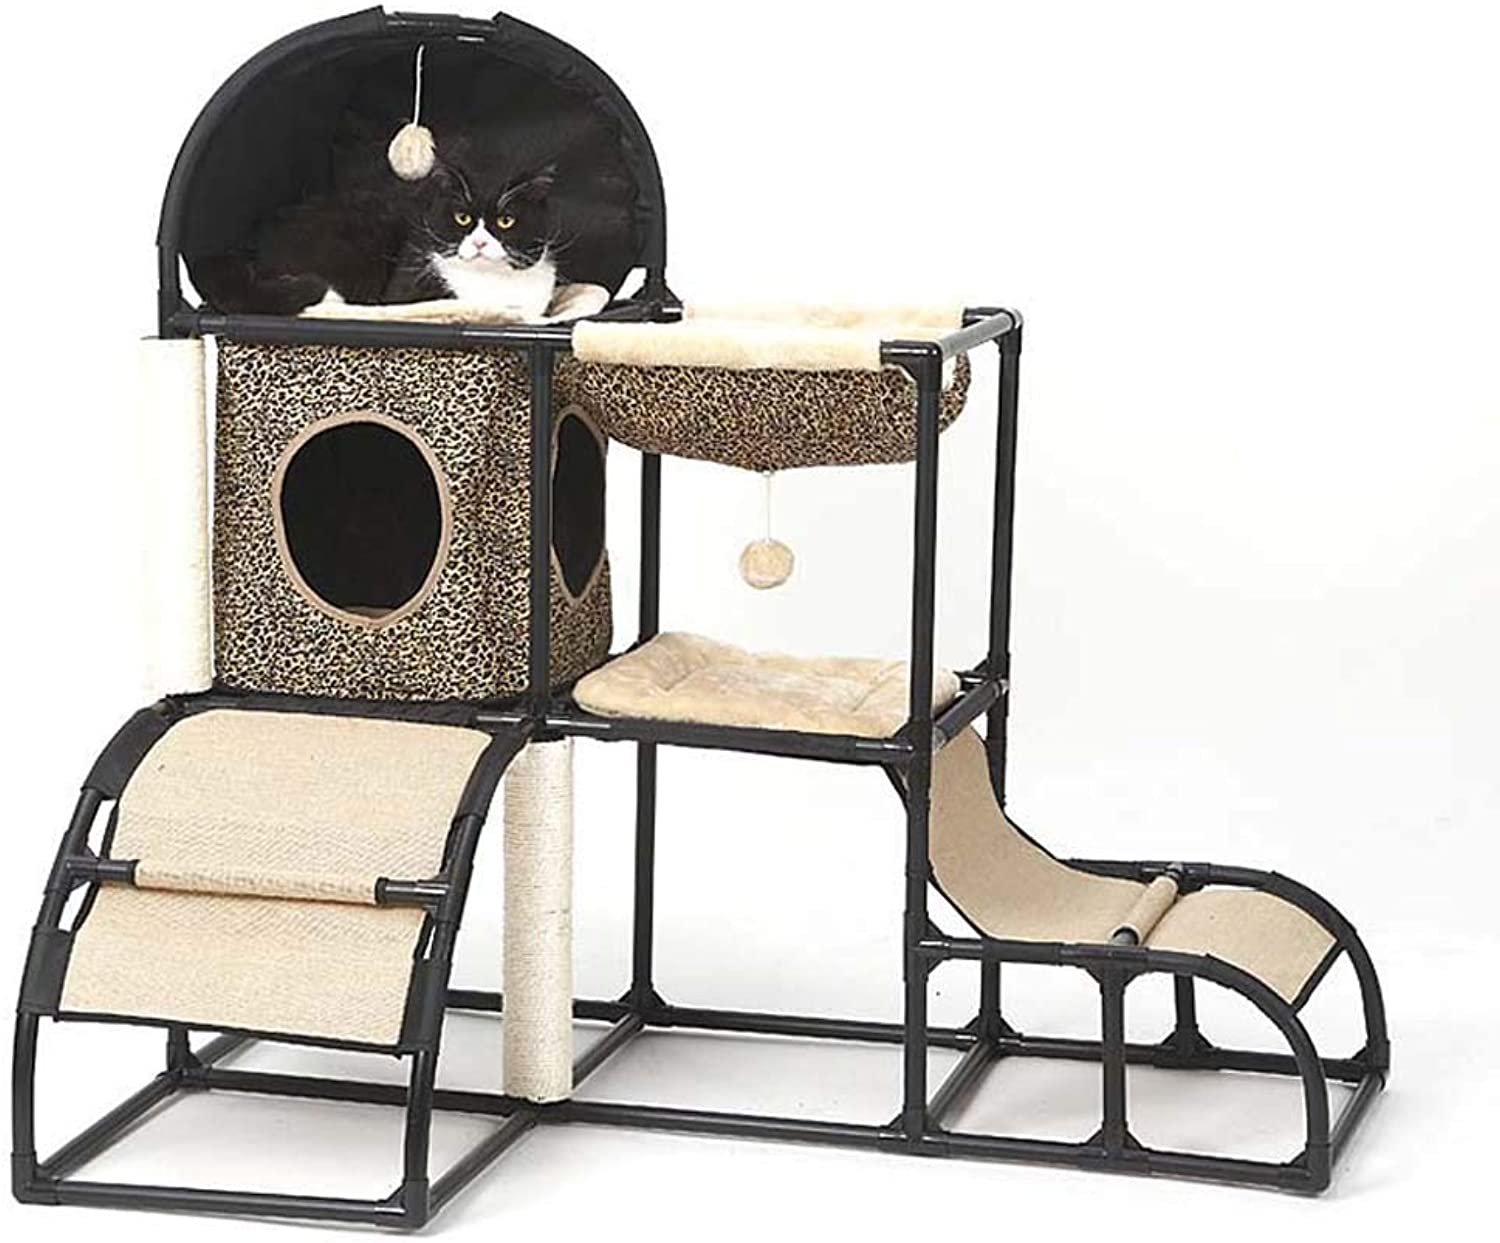 GLMAMK MultiPurpose Cat Climbing Frame, Detachable Combination Cat Kennels, Cat Toys With A Hammock,Brown